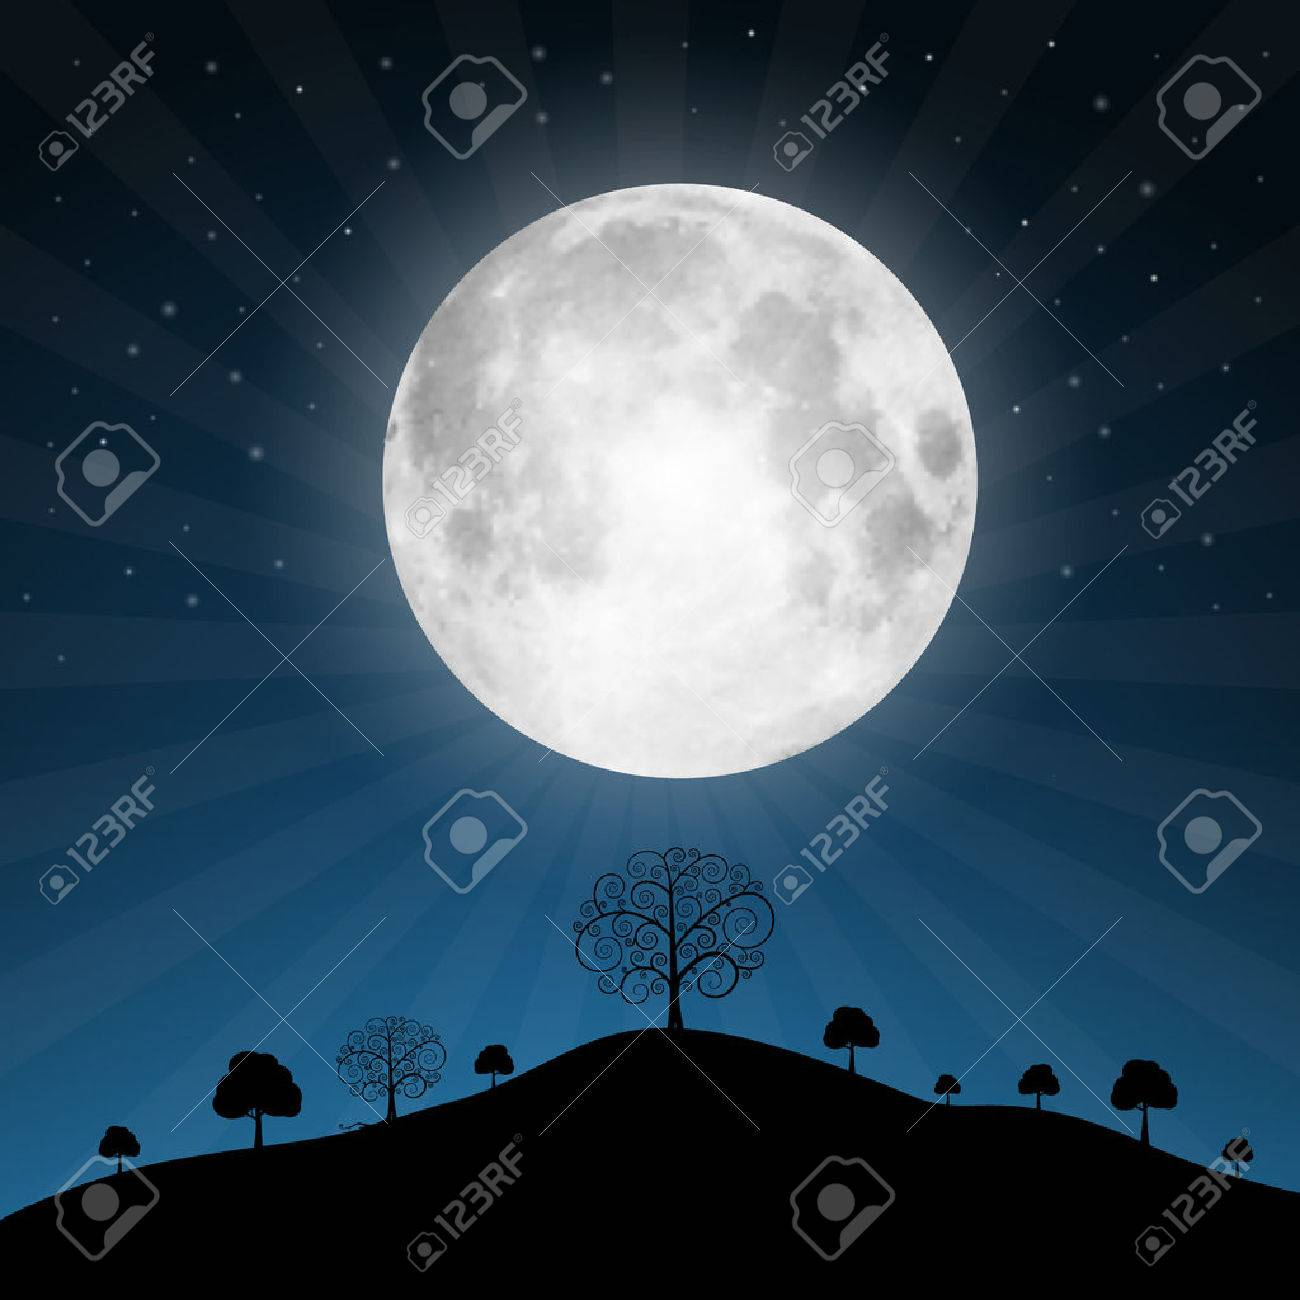 Vector Full Moon Illustration with Stars and Trees - 26974962